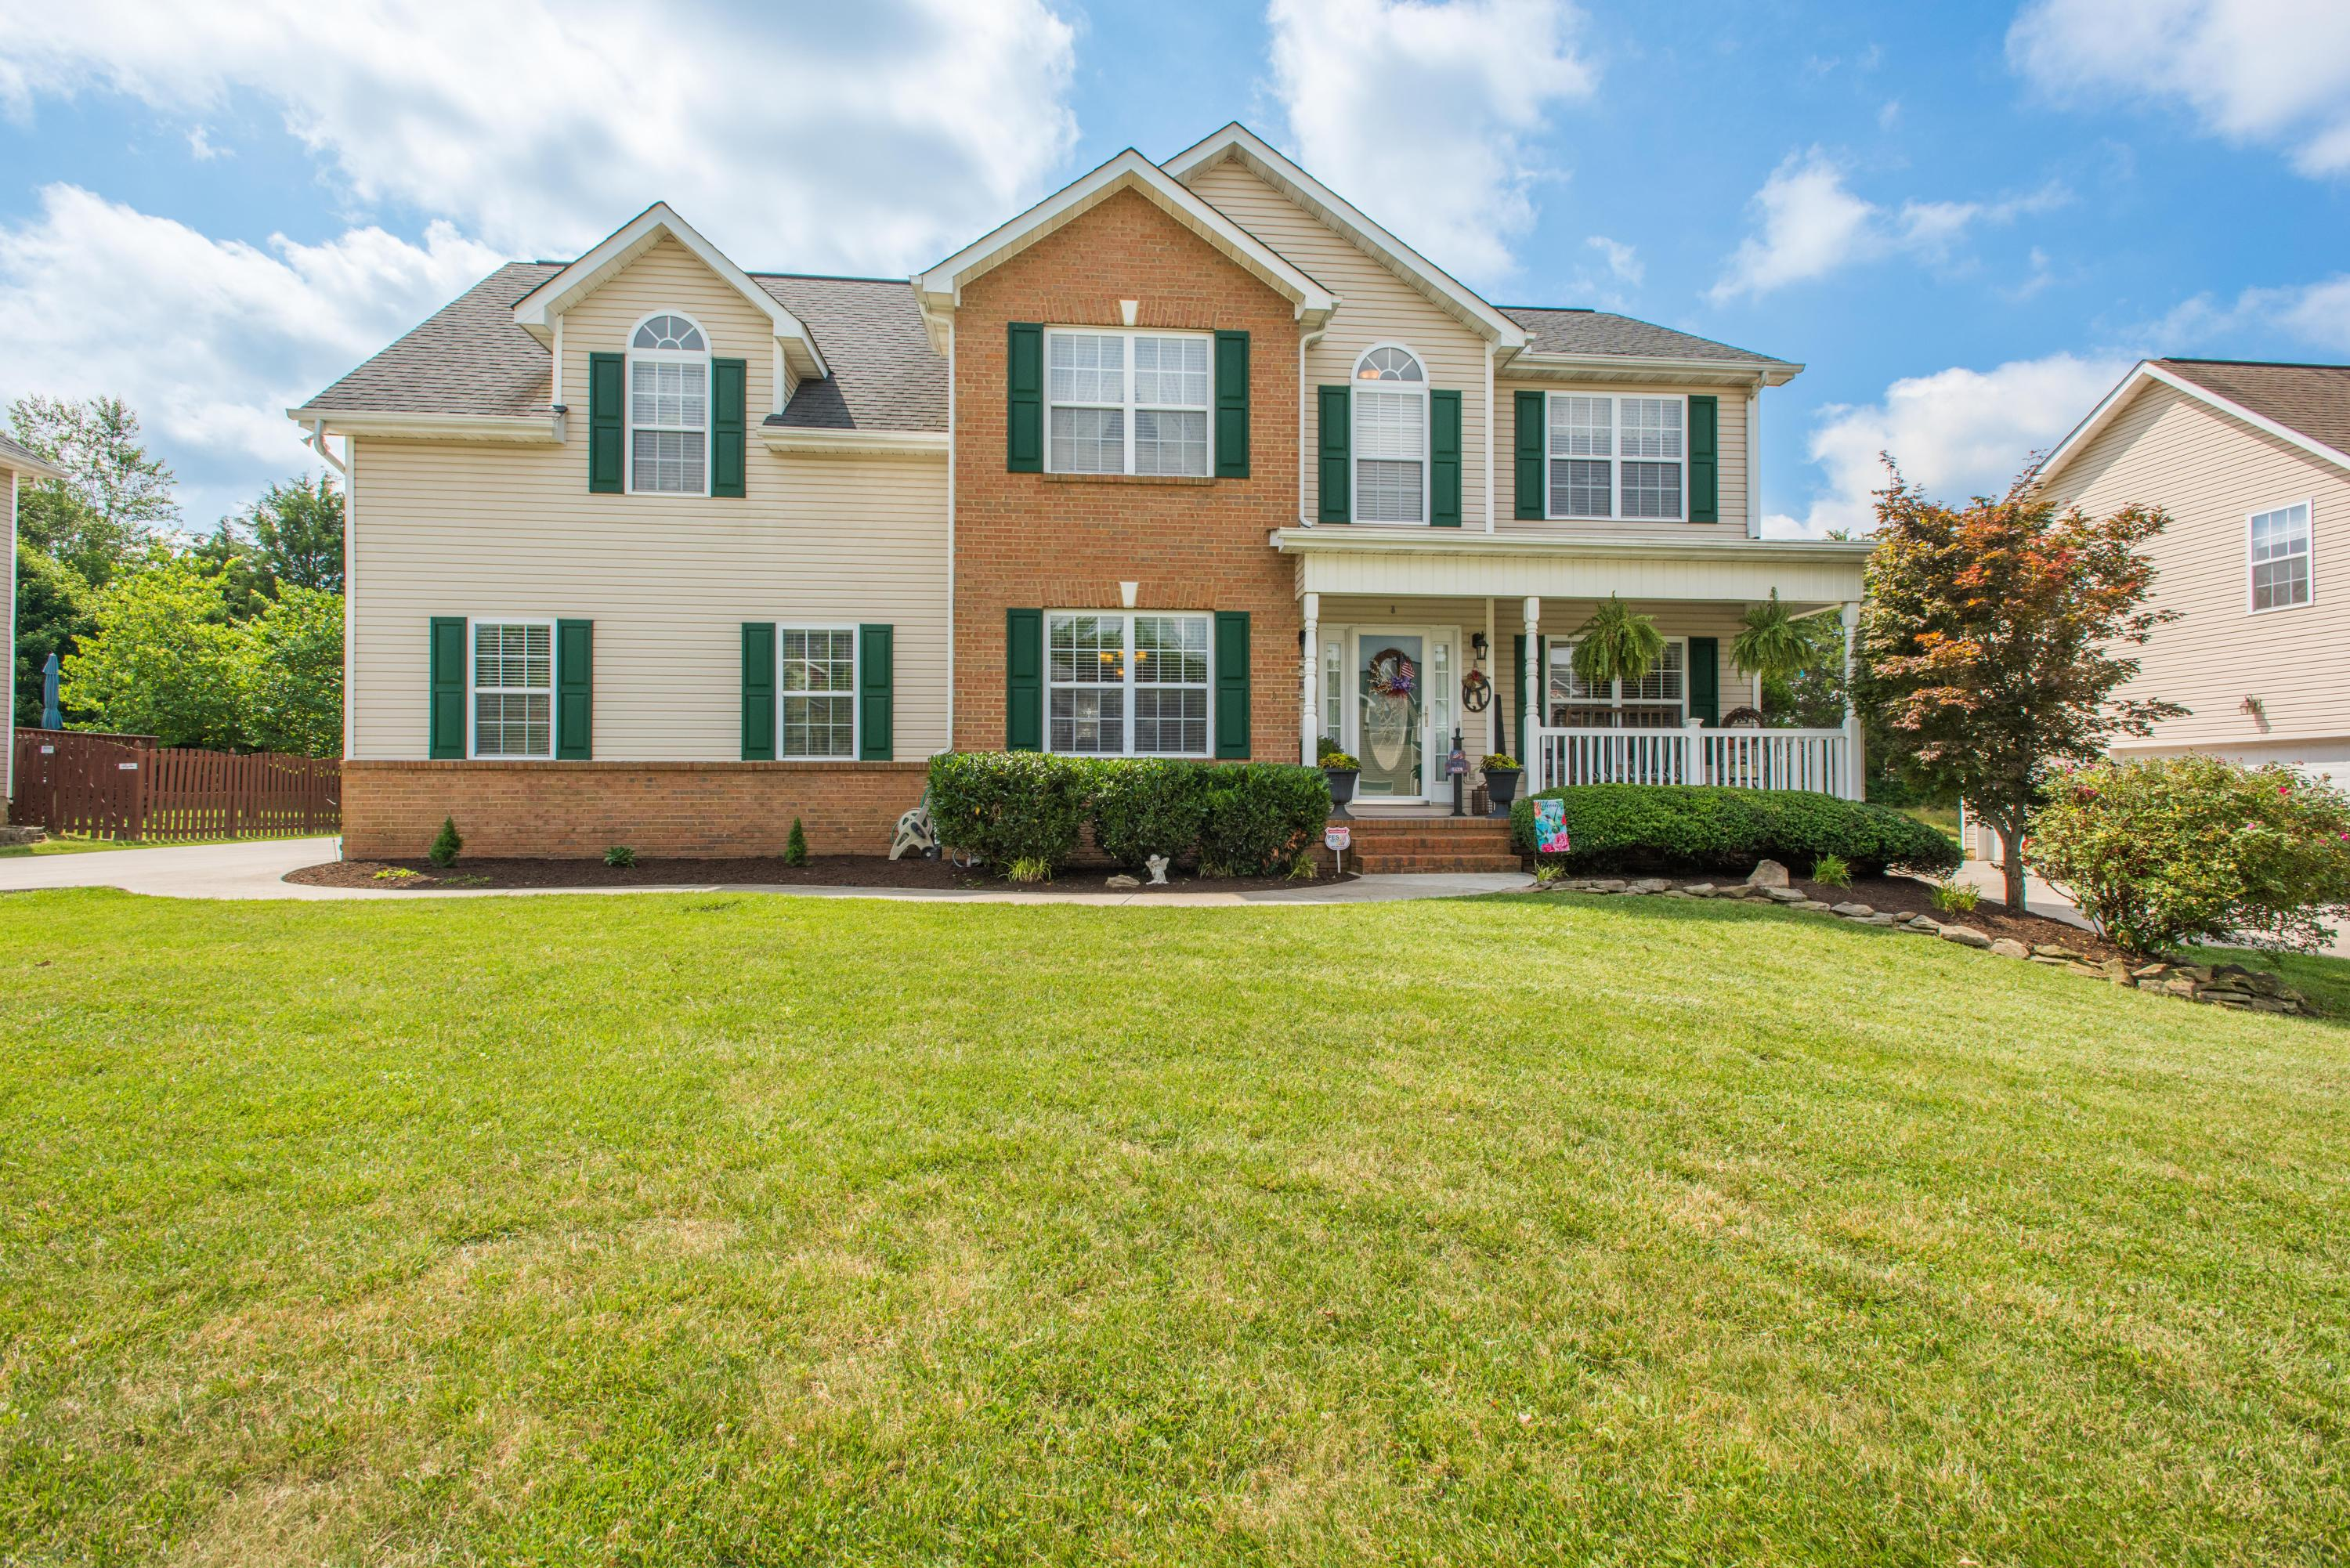 6018 Shannon Valley Farm Blvd., Knoxville, Tennessee, United States 37918, 4 Bedrooms Bedrooms, ,2 BathroomsBathrooms,Single Family,For Sale,Shannon Valley Farm Blvd.,1045492